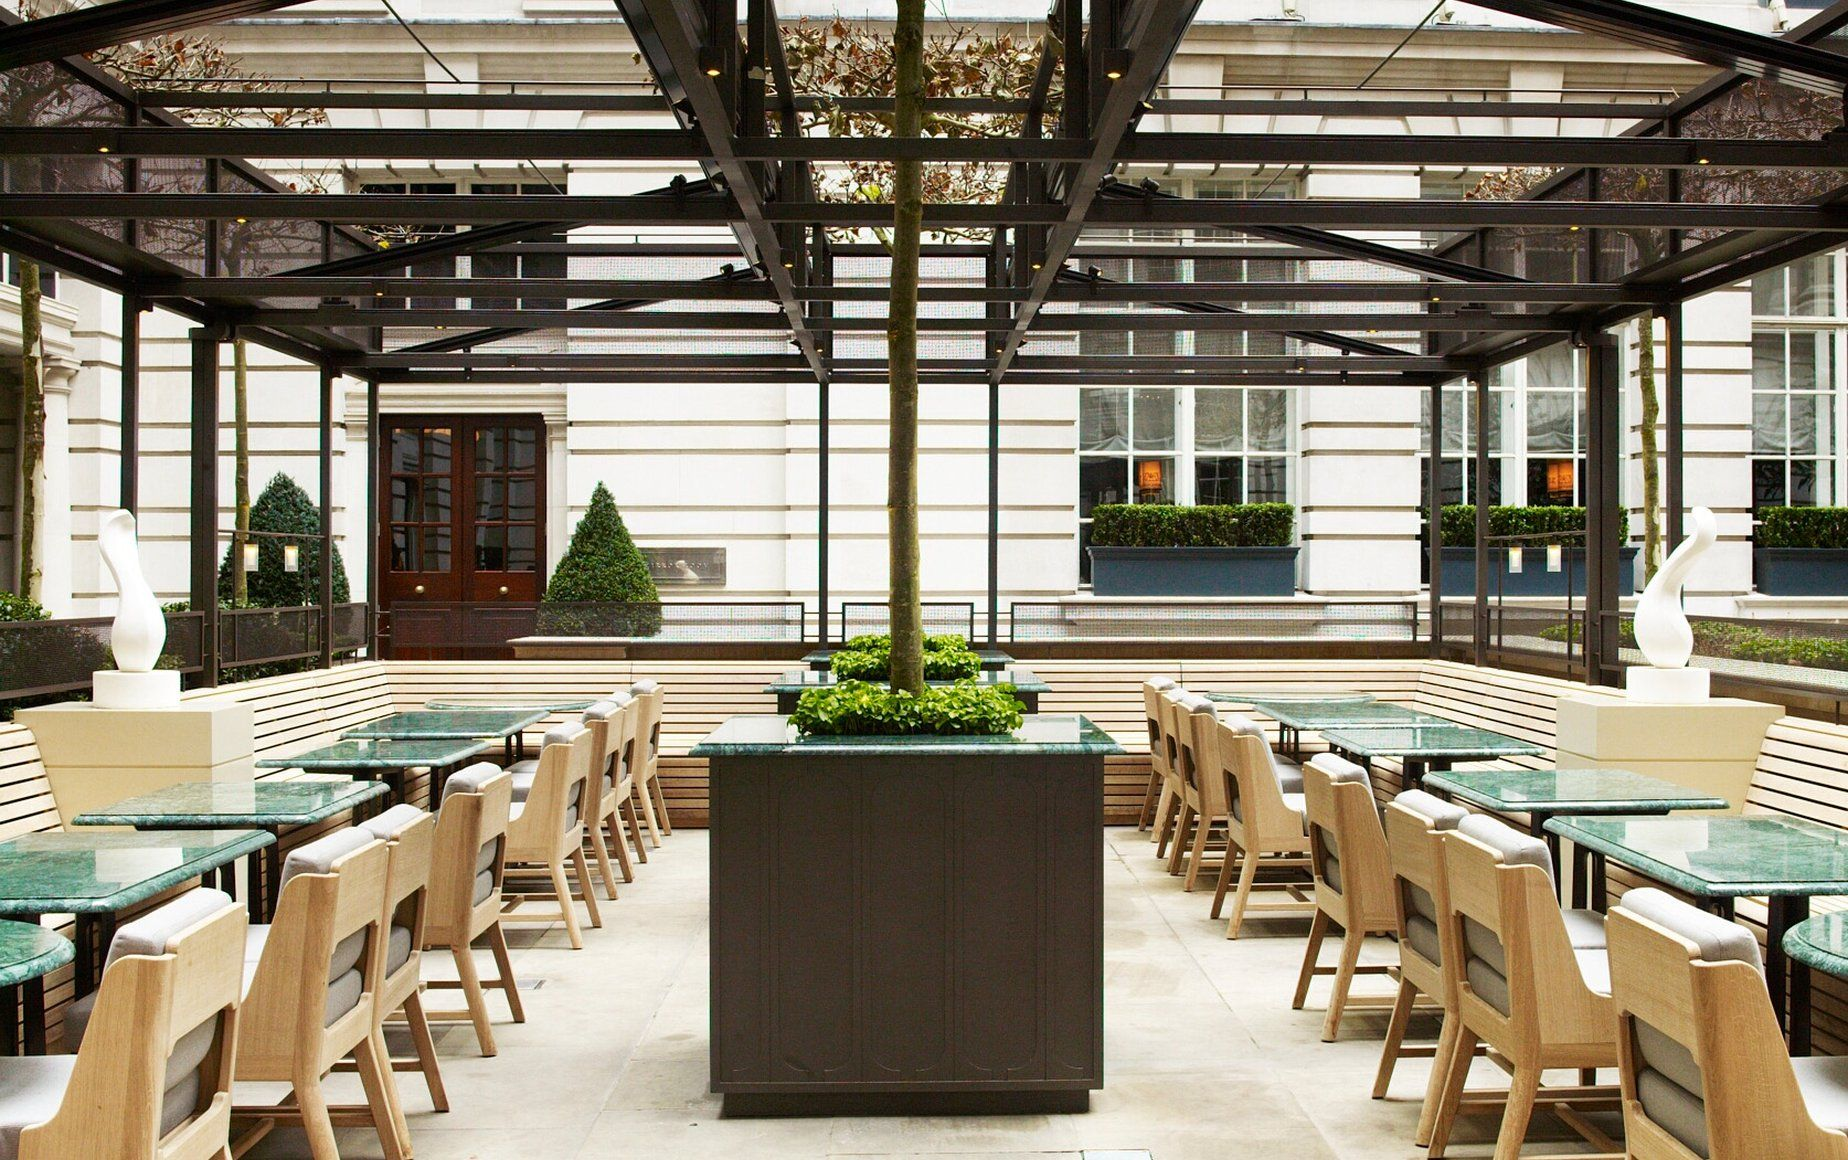 rosewood hotel in london courtyard designed by luciano On terrace hotel london